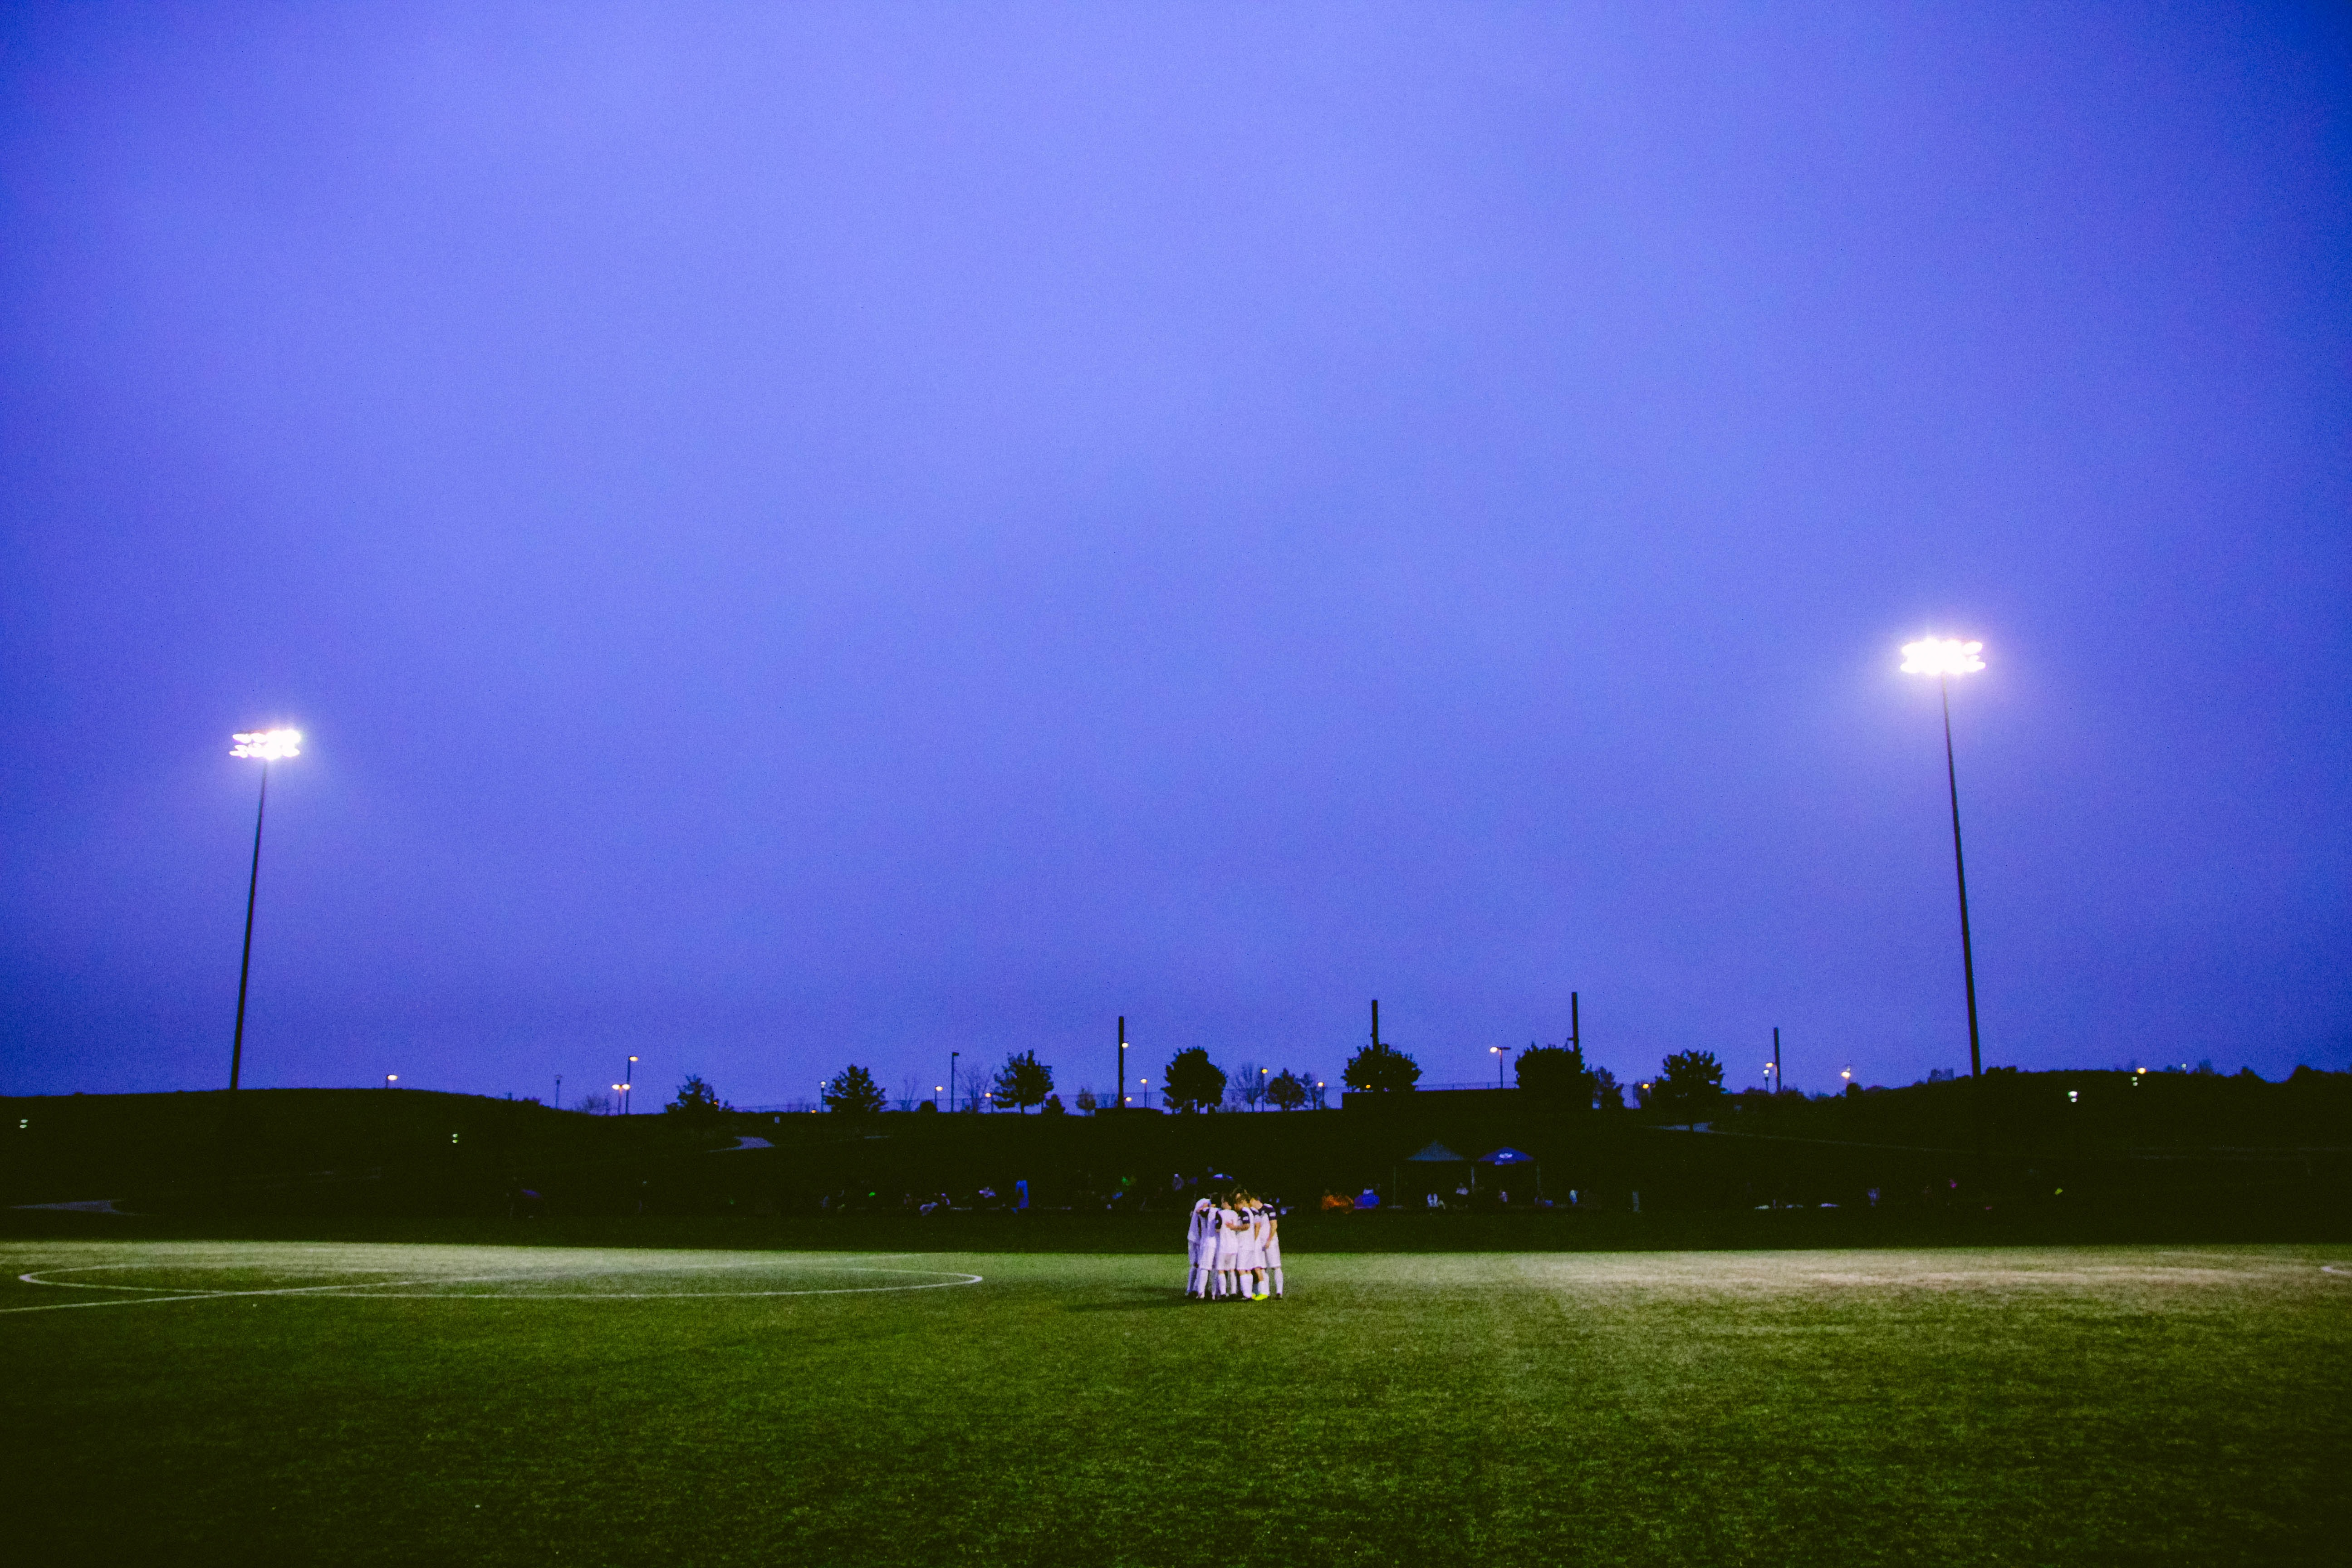 A grass football field in the middle of the evening